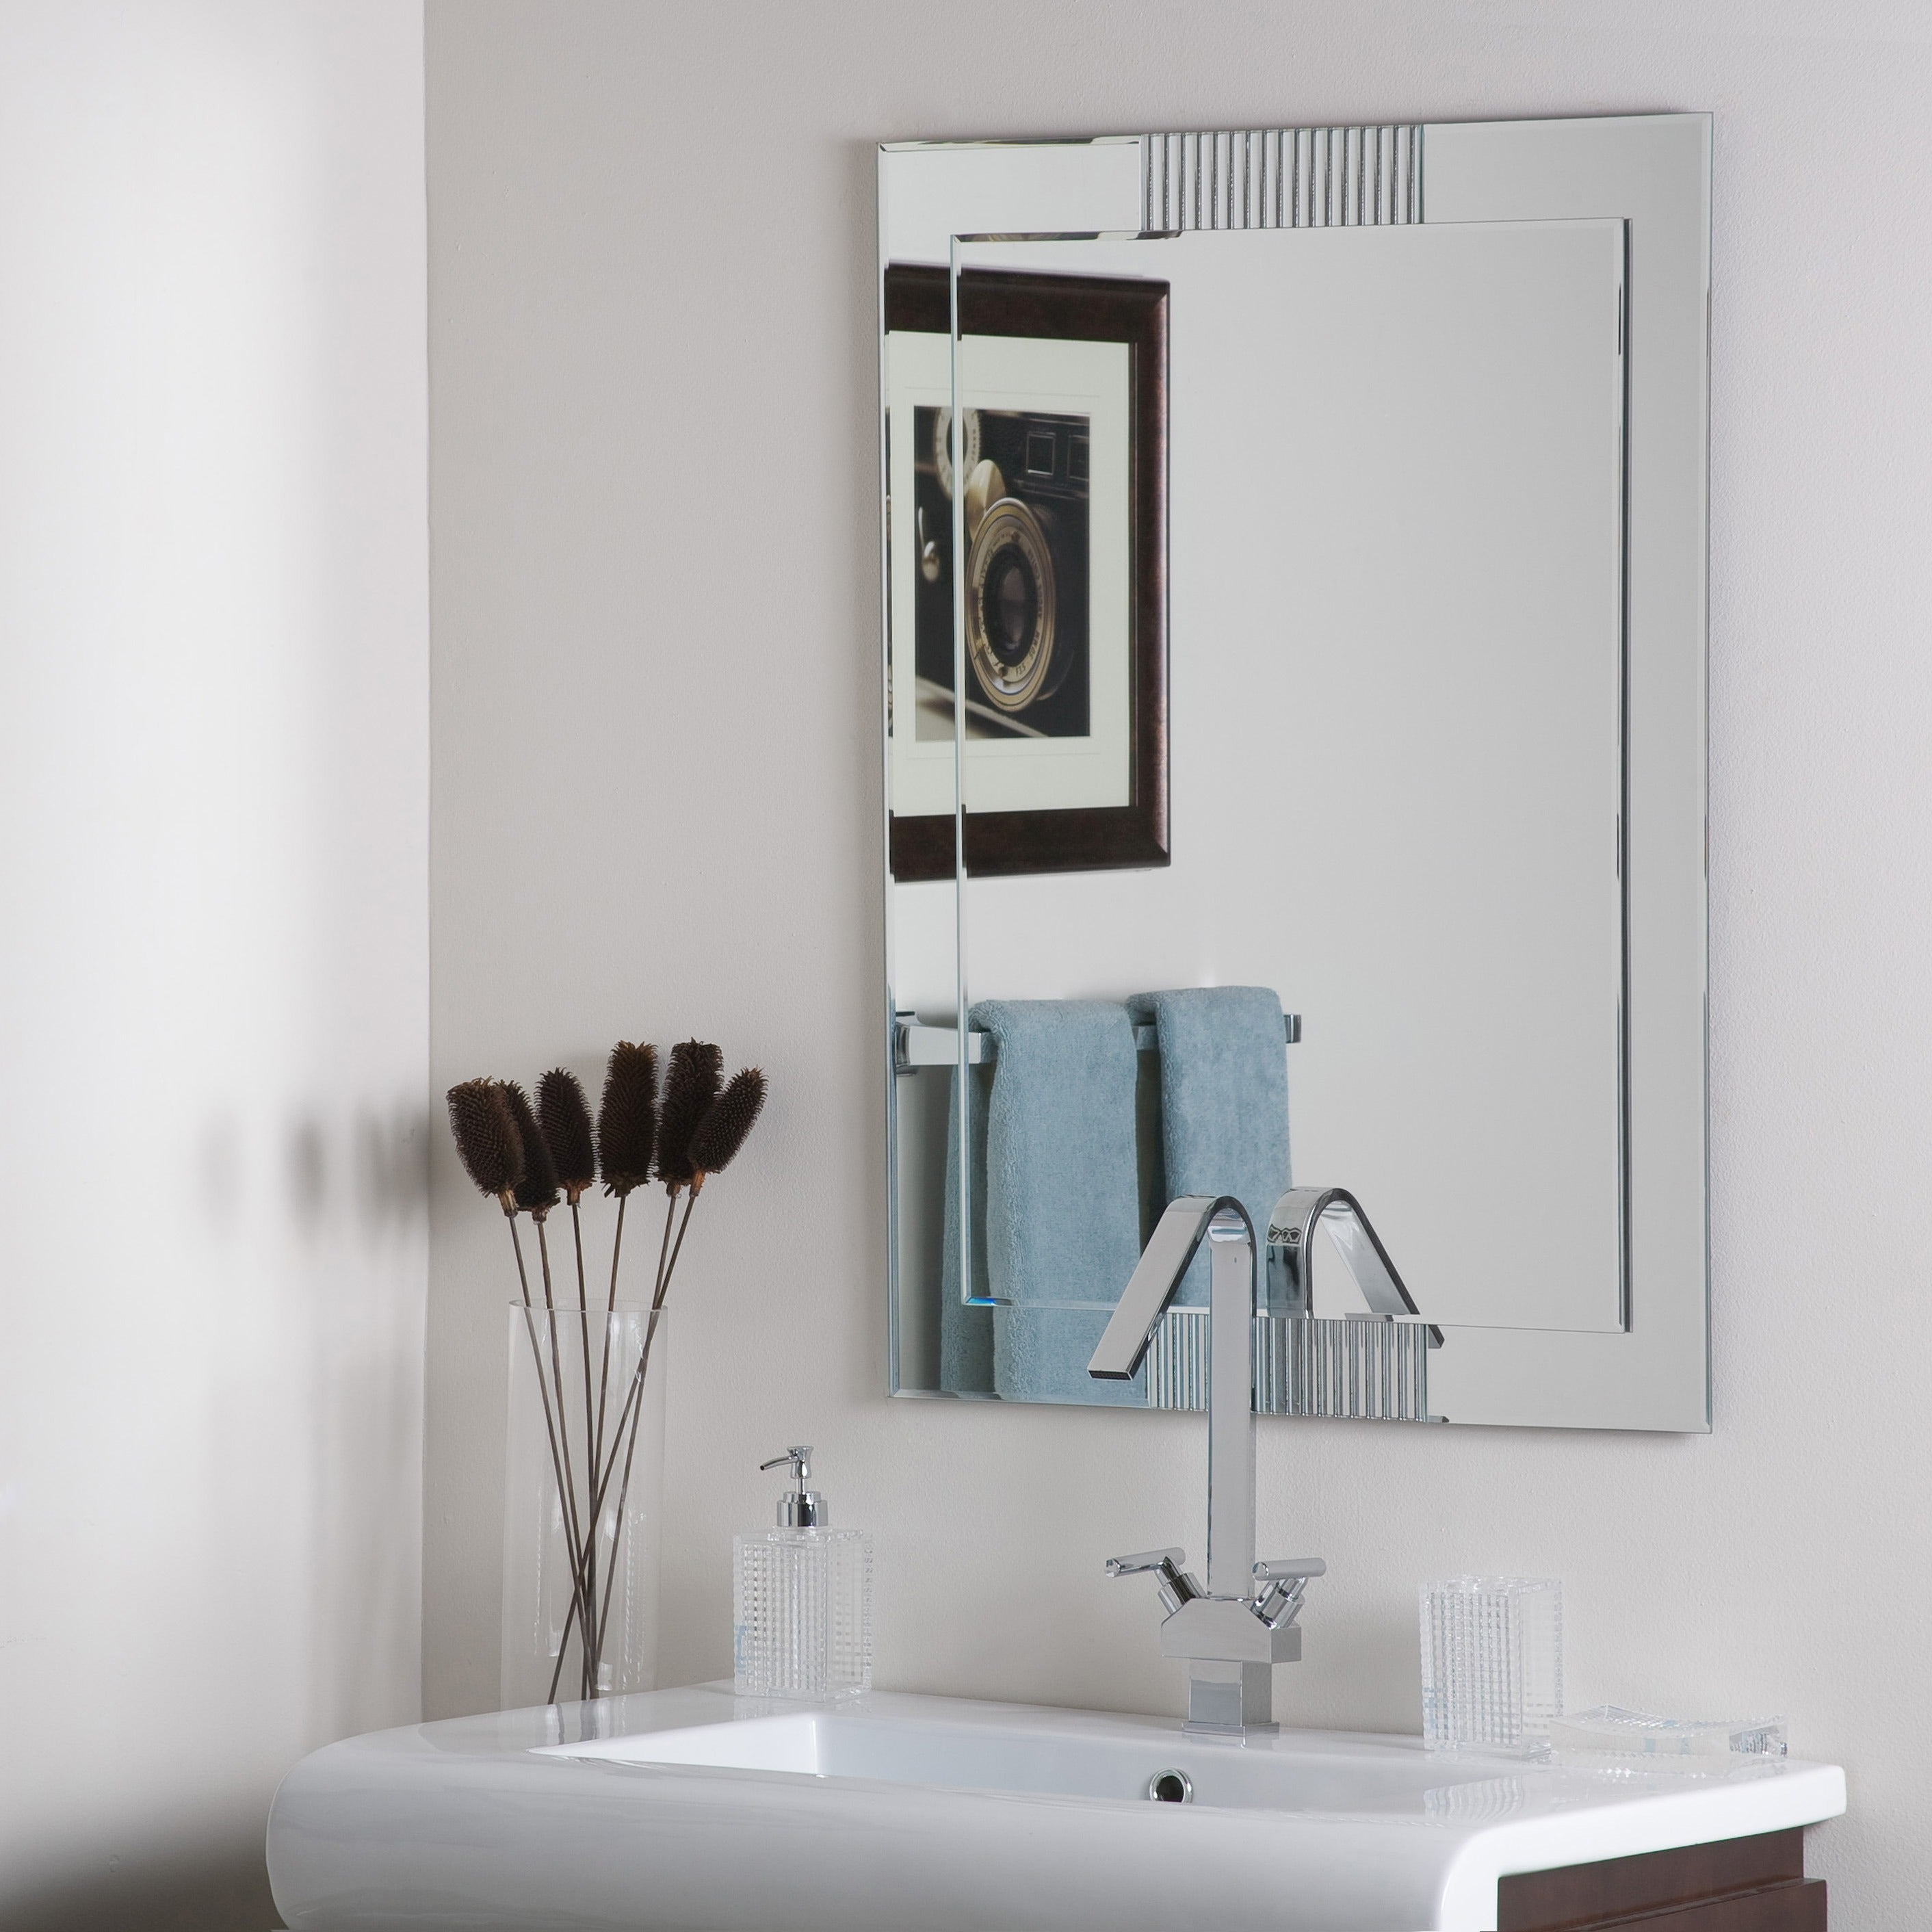 Fashionable Francisca Large Frameless Wall Mirror – Silver – A/n Throughout Large Frameless Wall Mirrors (View 5 of 20)